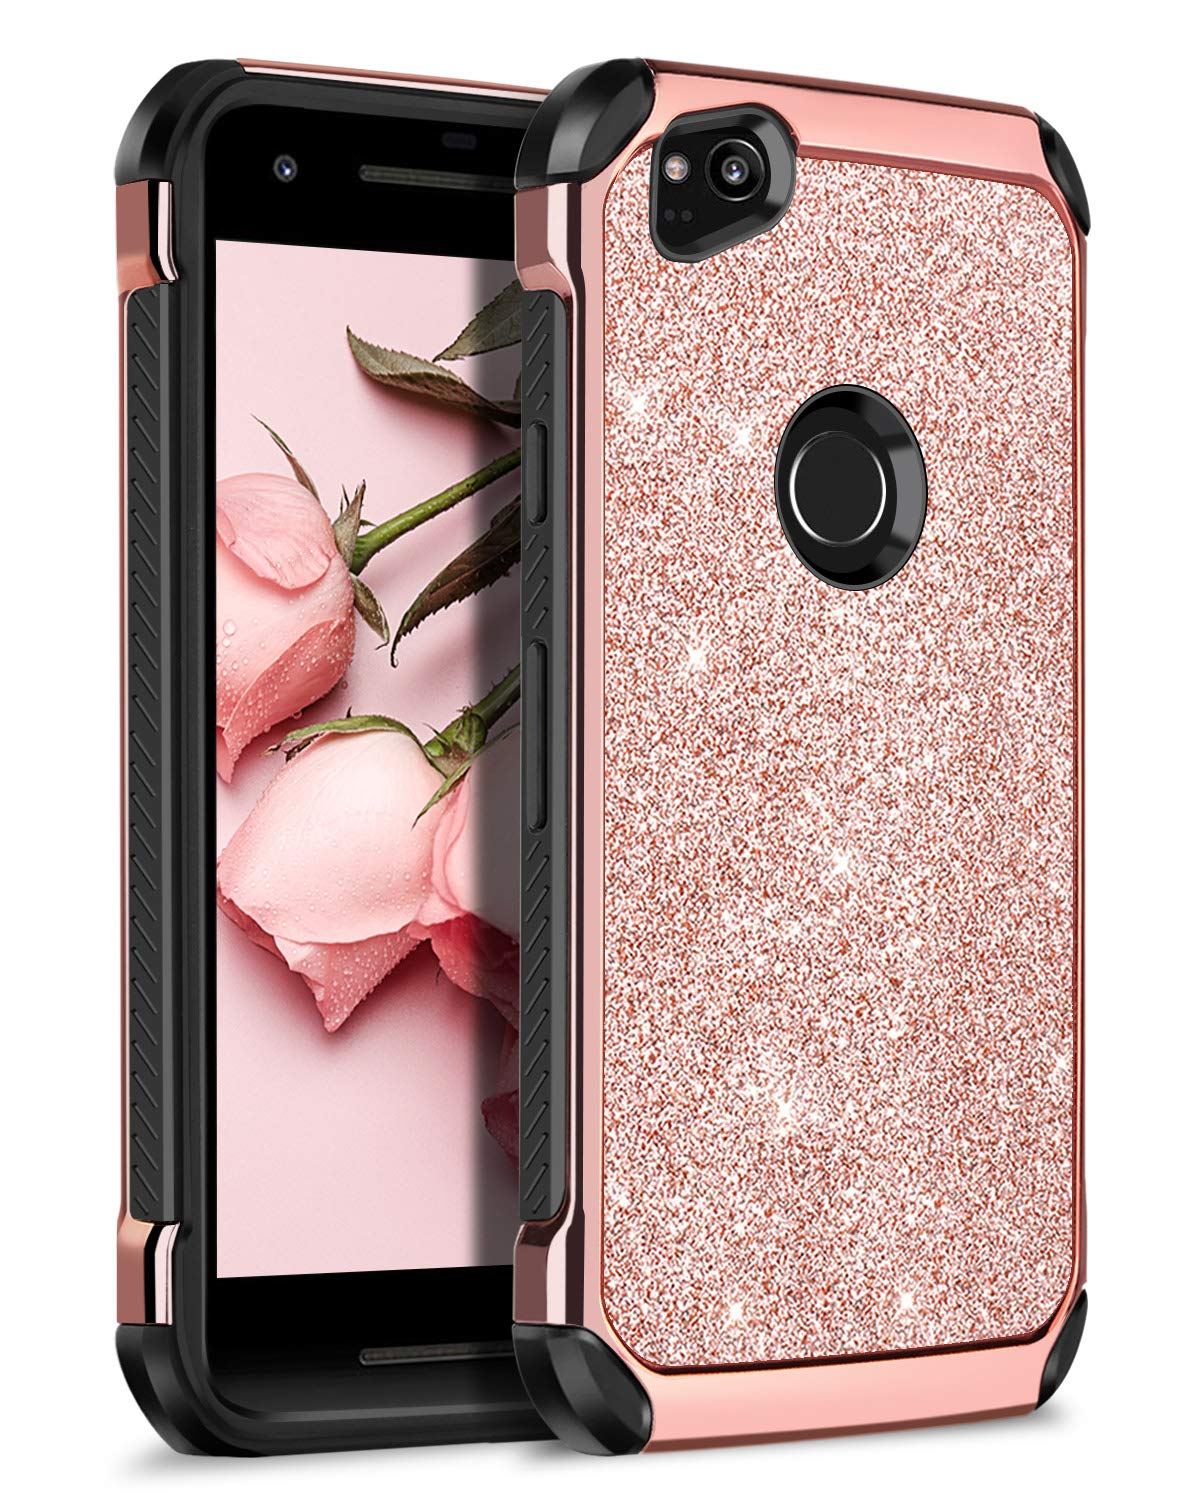 Google Pixel 2 Case, BENTOBEN Phone Case for Google Pixel 2, Bling Sparkly Shiny Glitter Design Slim 2 in 1 Hybrid Soft TPU Bumper Hard PC Cover with PU Faux Leather Shockproof Protective Phone Cases for Girls Women - Rose Gold